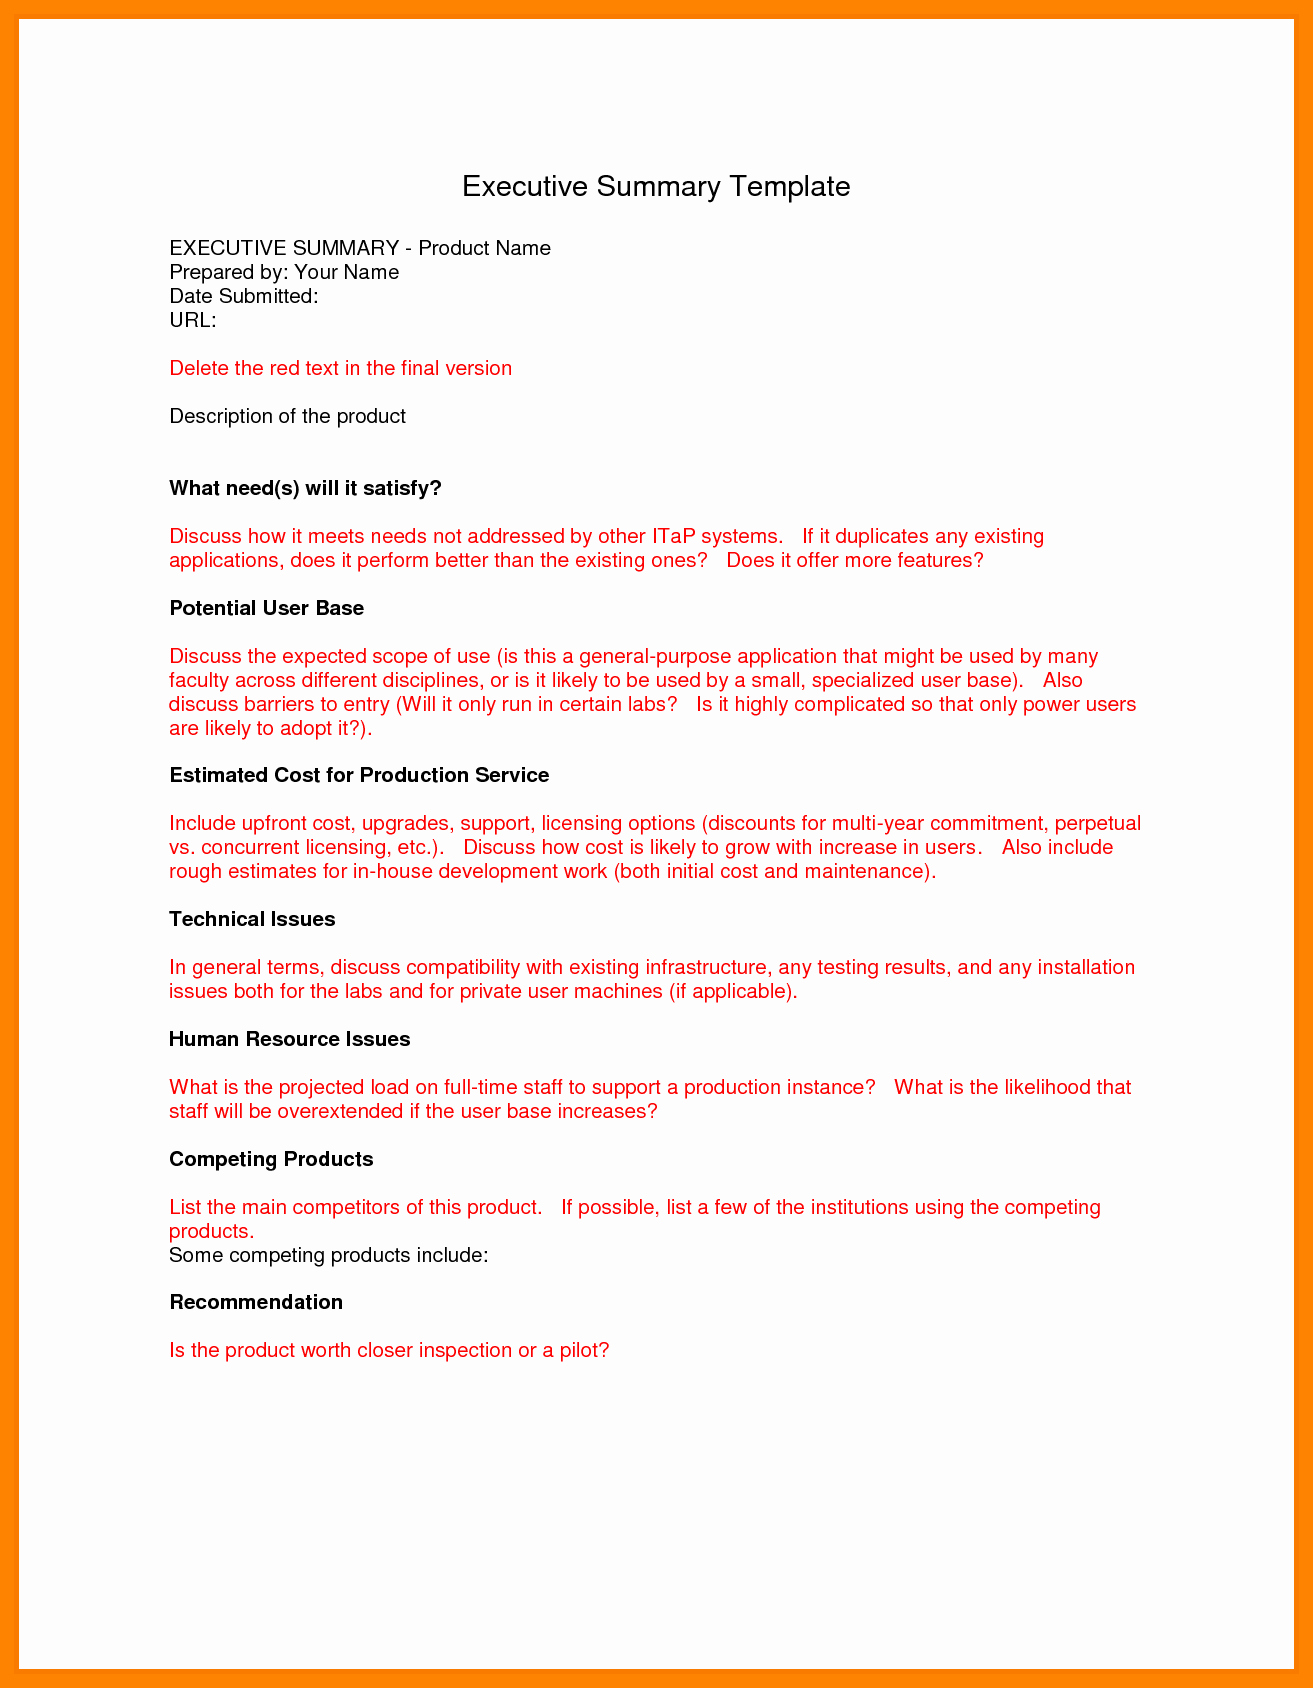 Executive Summary Report Example Template Fresh 14 Example Of Executive Summary Report